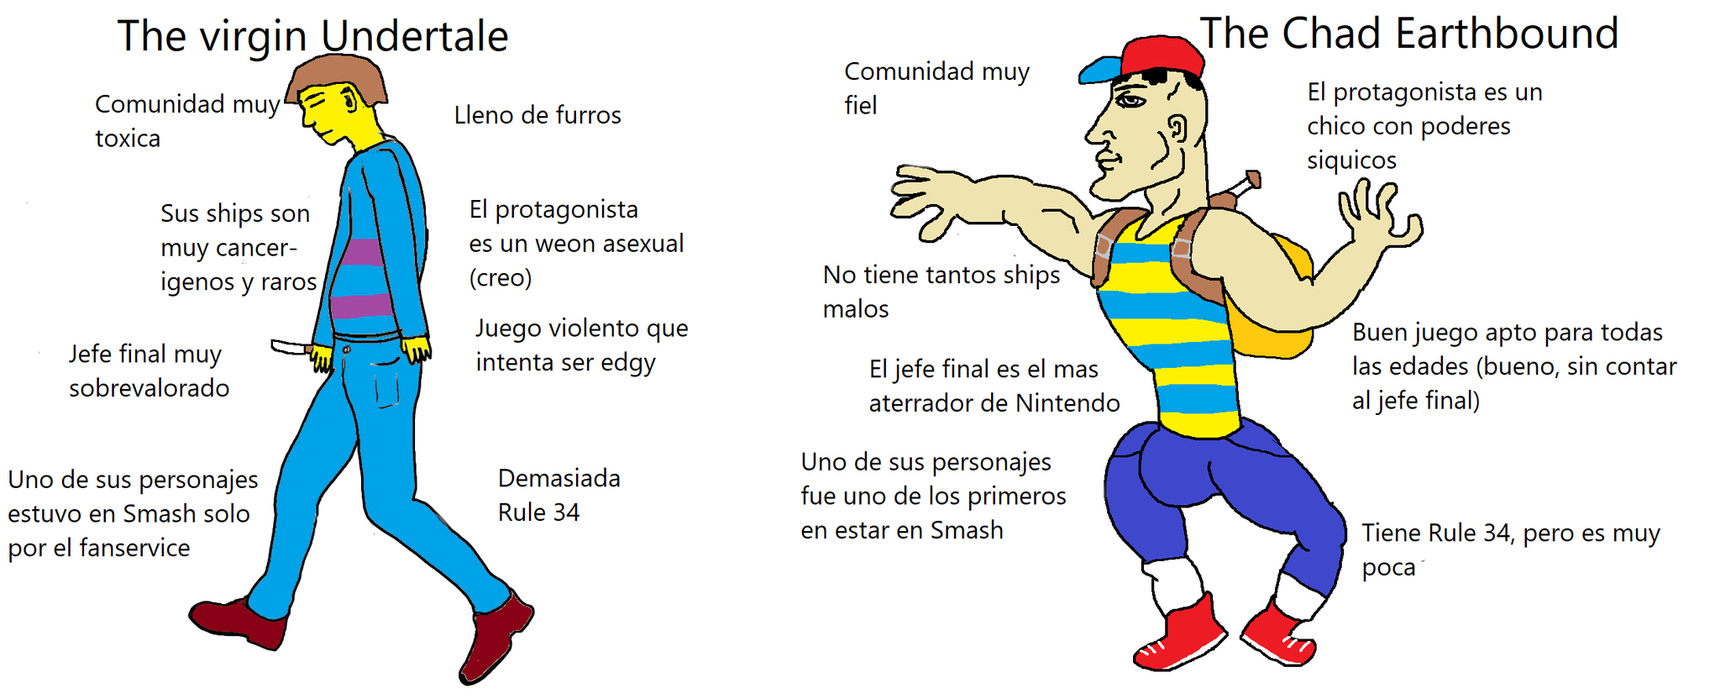 Virgin Undertale vs Chad Earthbound - meme